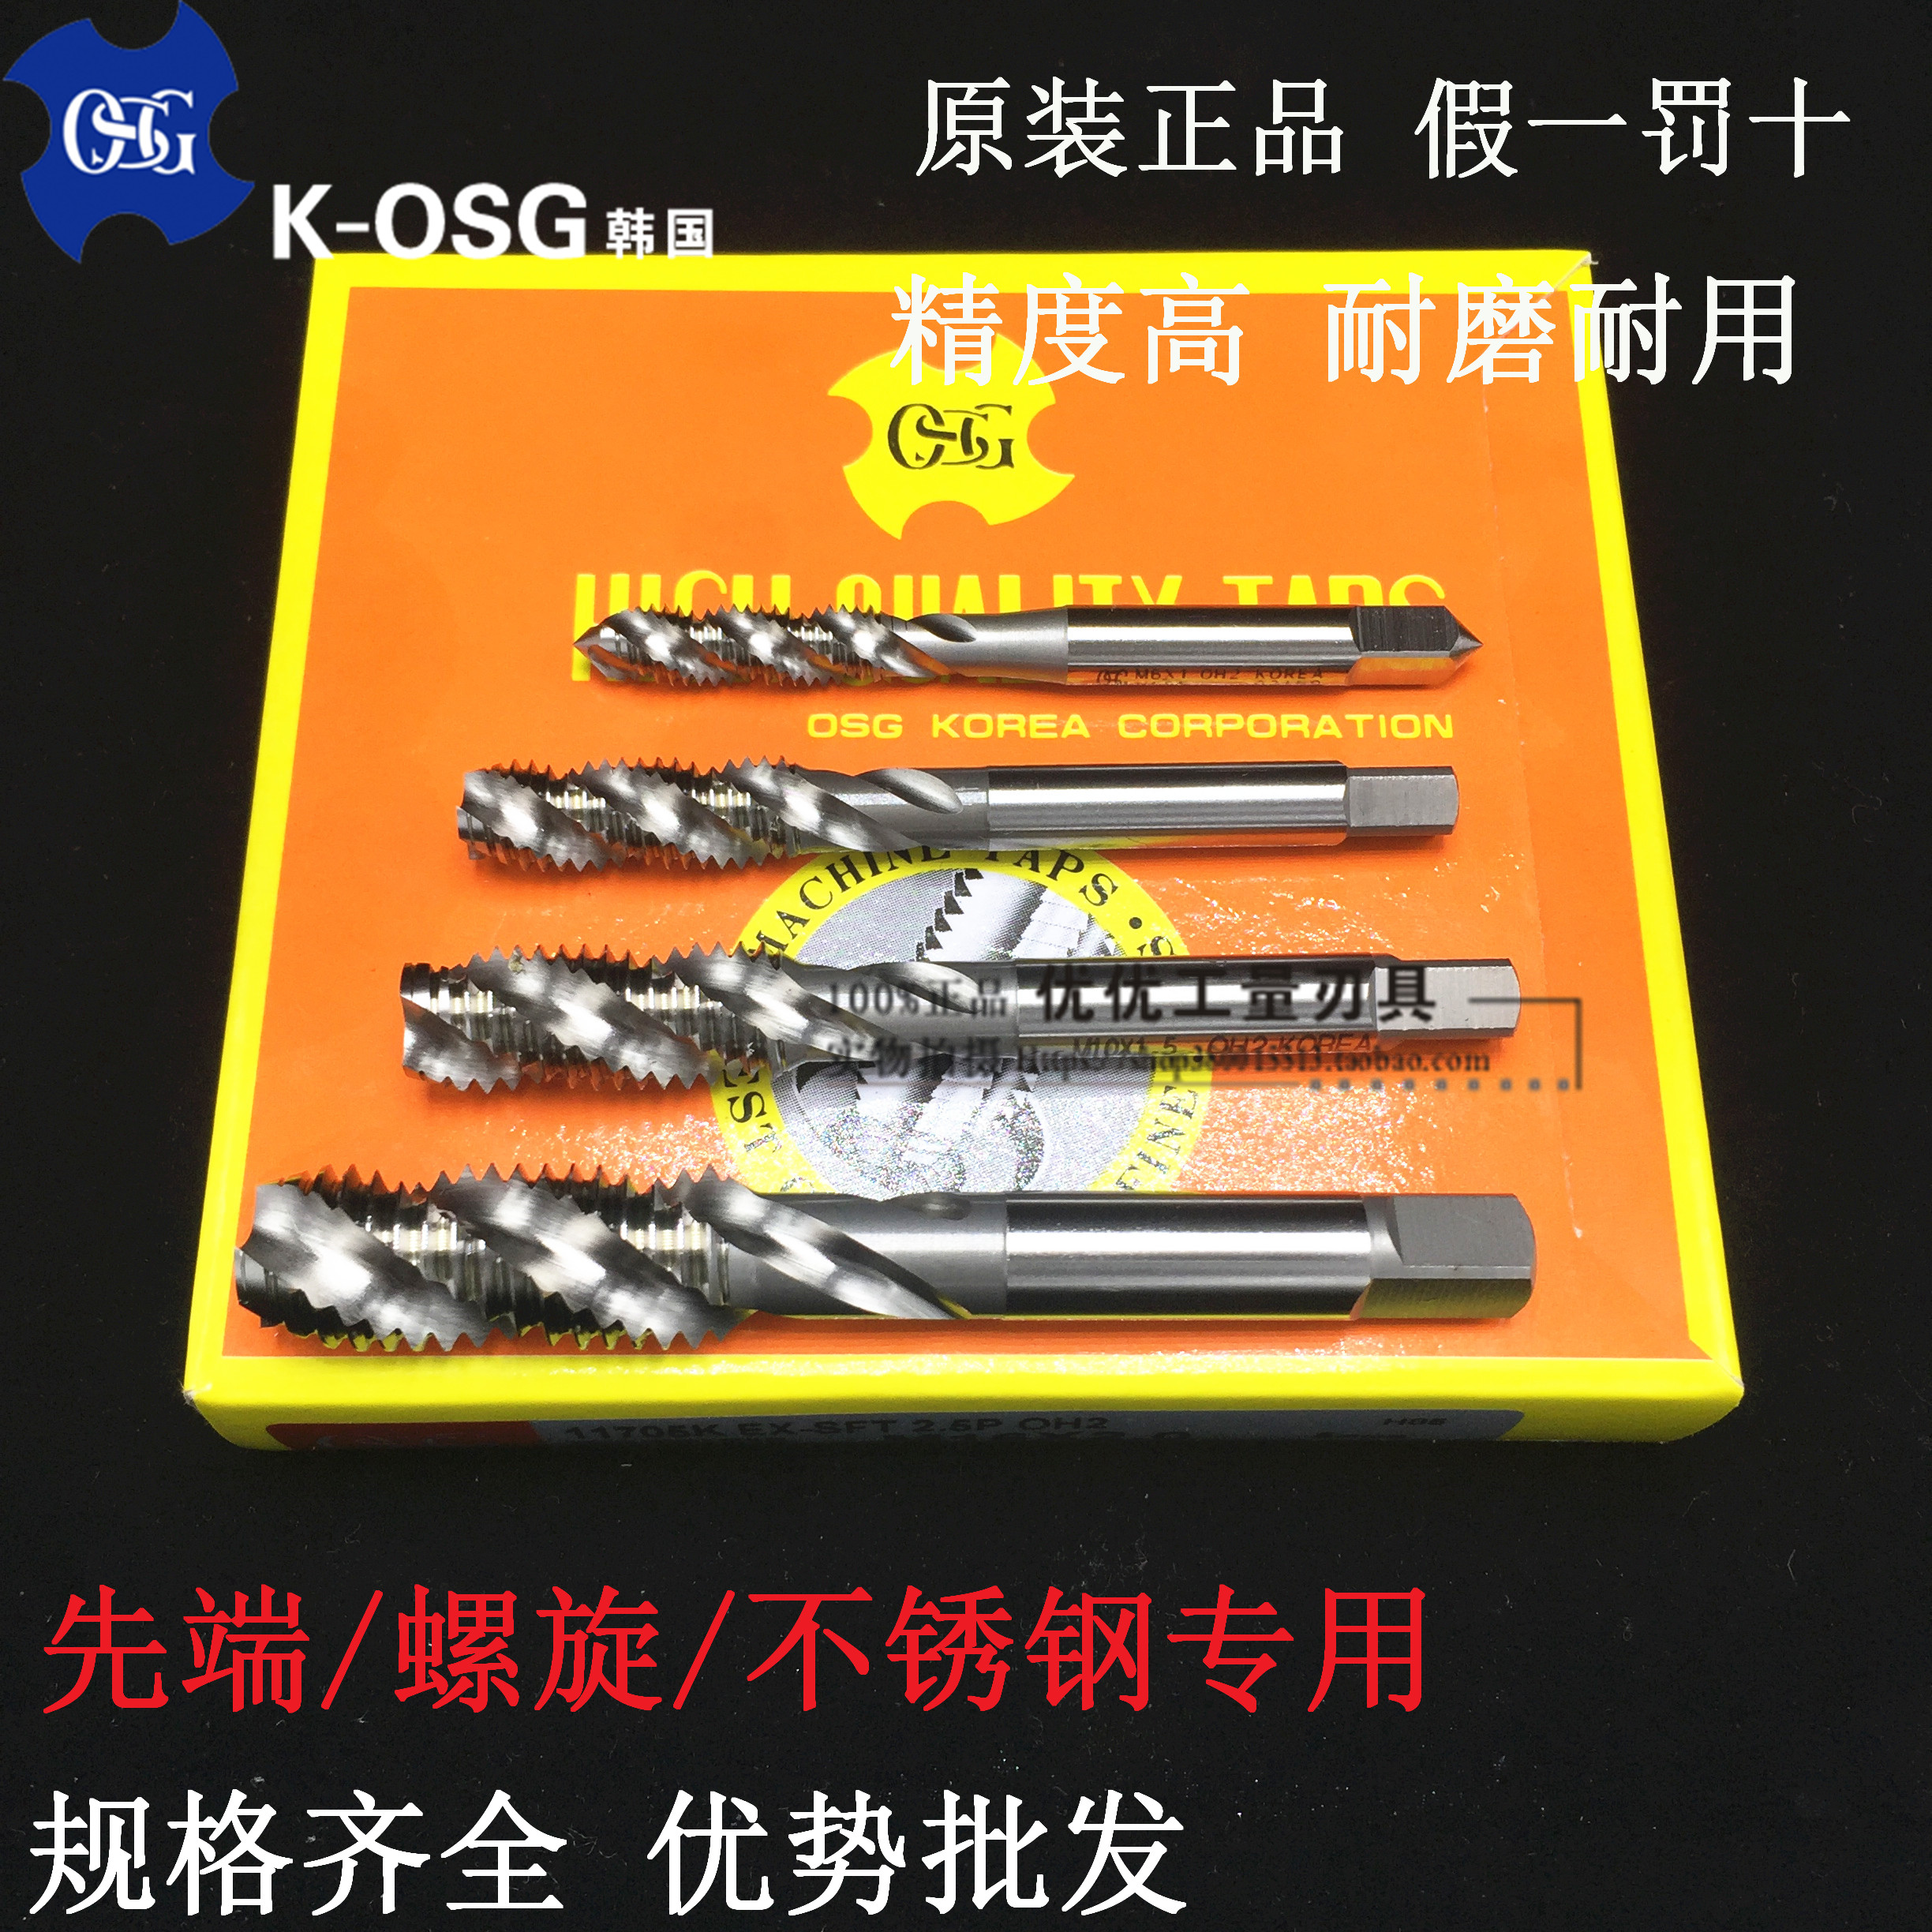 K-OSG screw taps imported from Korea EX-SFTM (22.53456810121416)